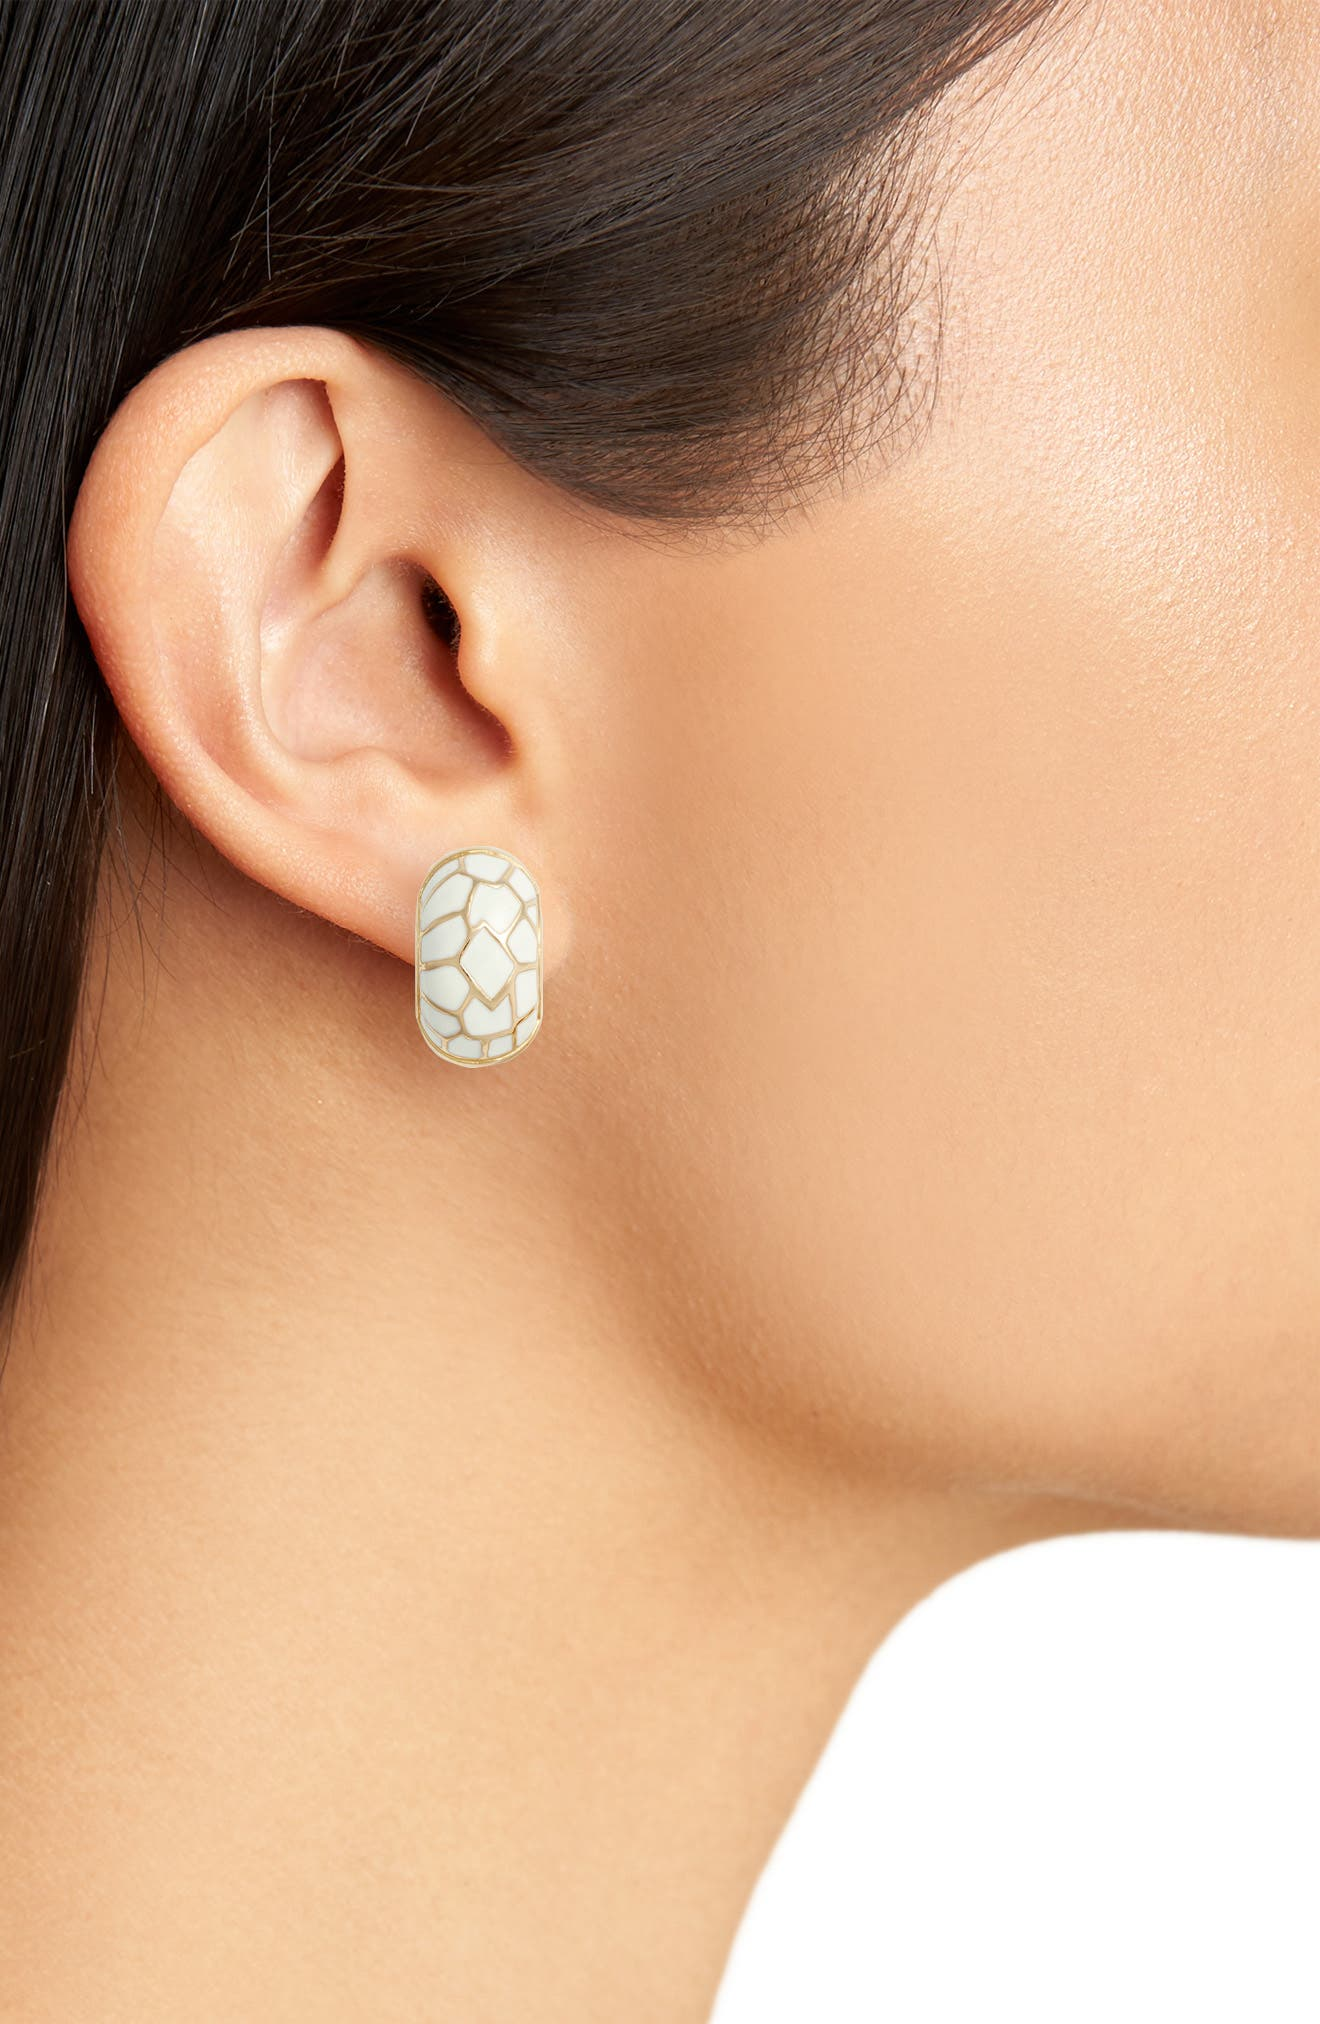 White Cobblestone Earrings,                             Alternate thumbnail 2, color,                             White